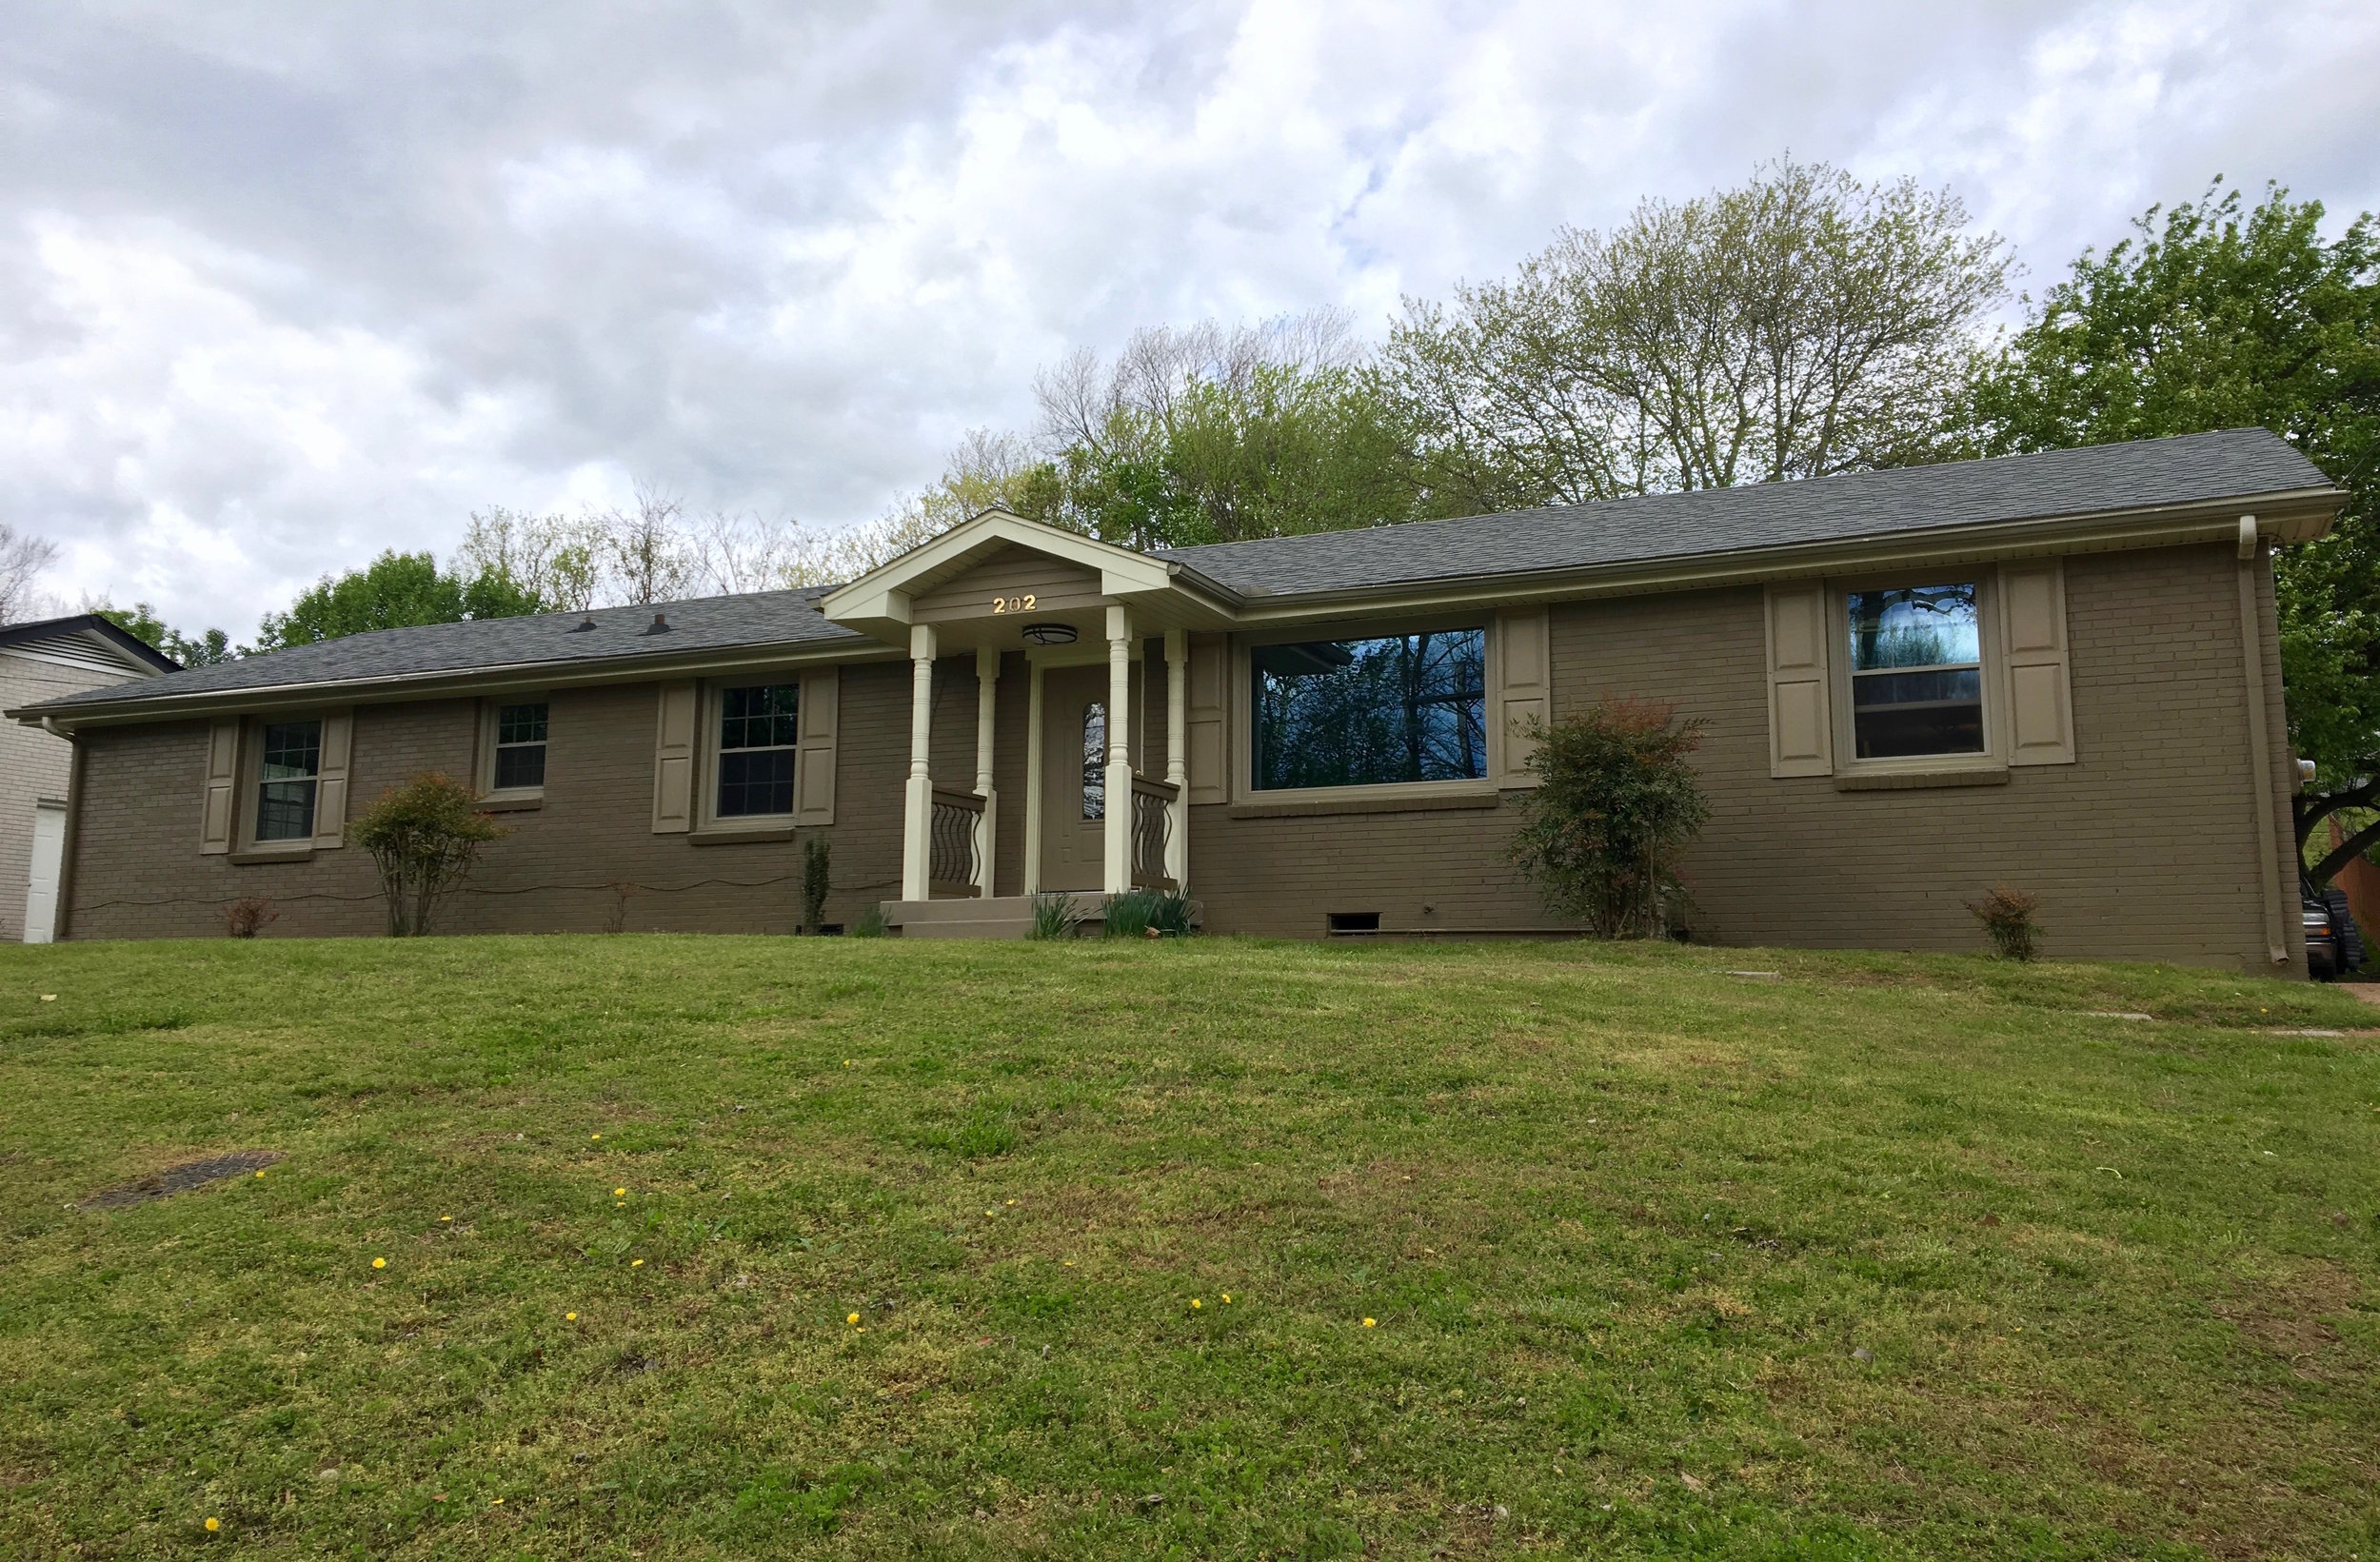 202 Tusculum Rd RENTED   ANTIOCH :  Single Family Home:  4 Br, 1.5 Ba + Garage + Deck +Privacy Fenced